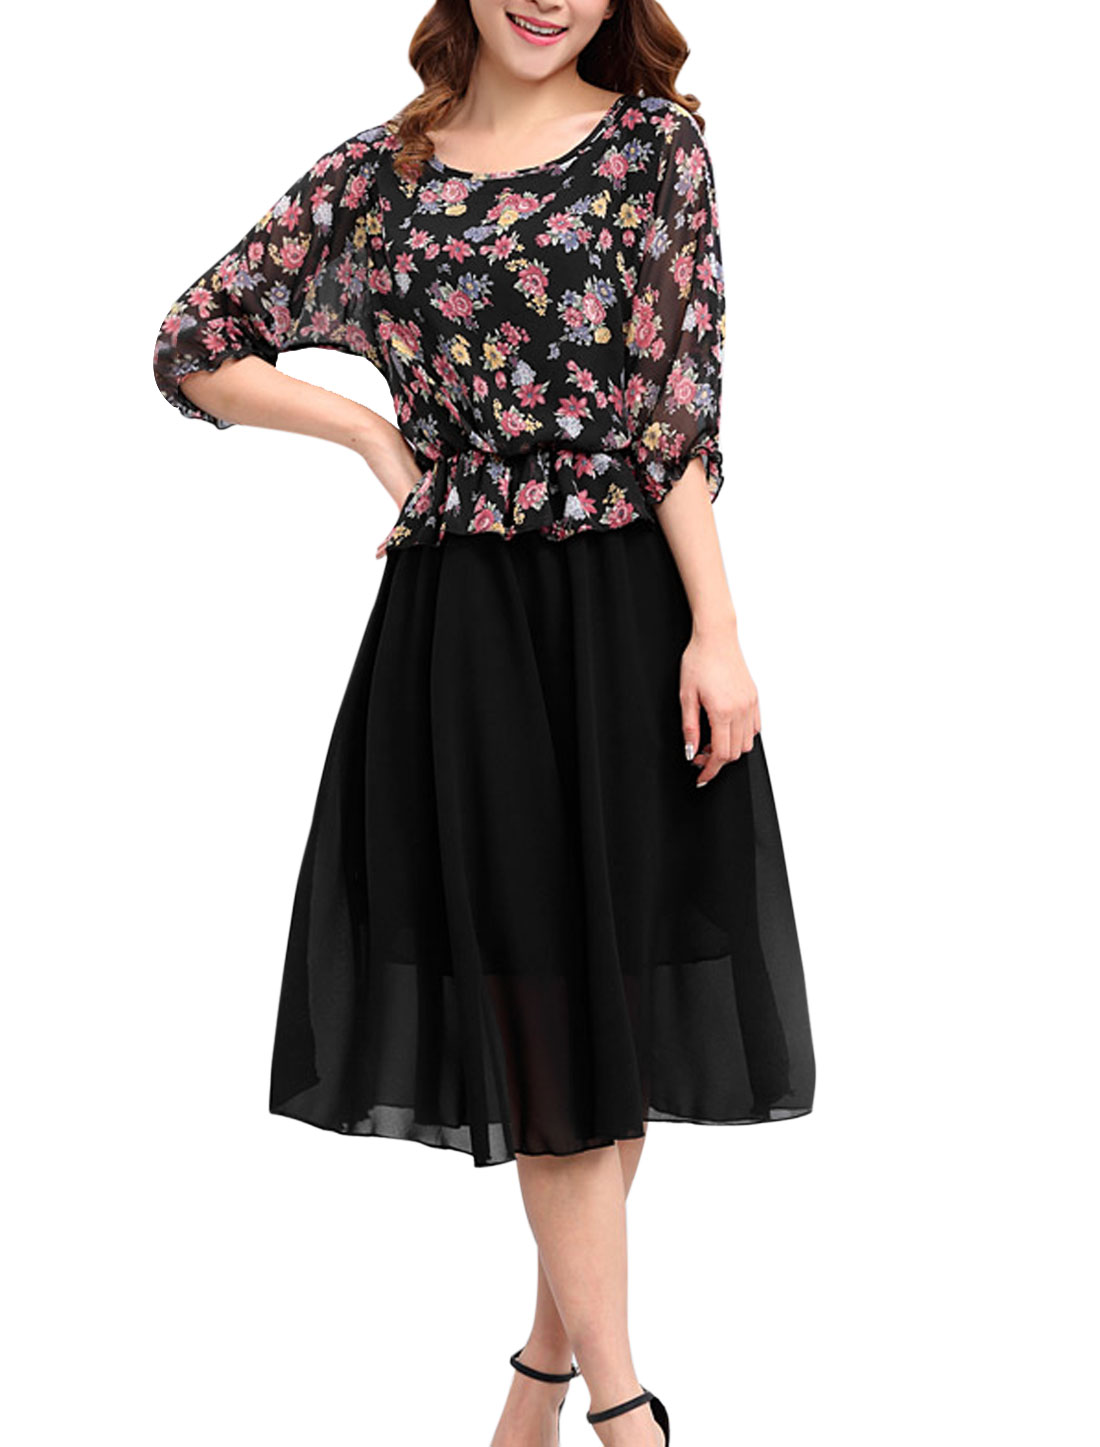 Lady 3/4 Sleeve Floral Print Elastic Waist Layered Design Chiffon Dress Multicolor L